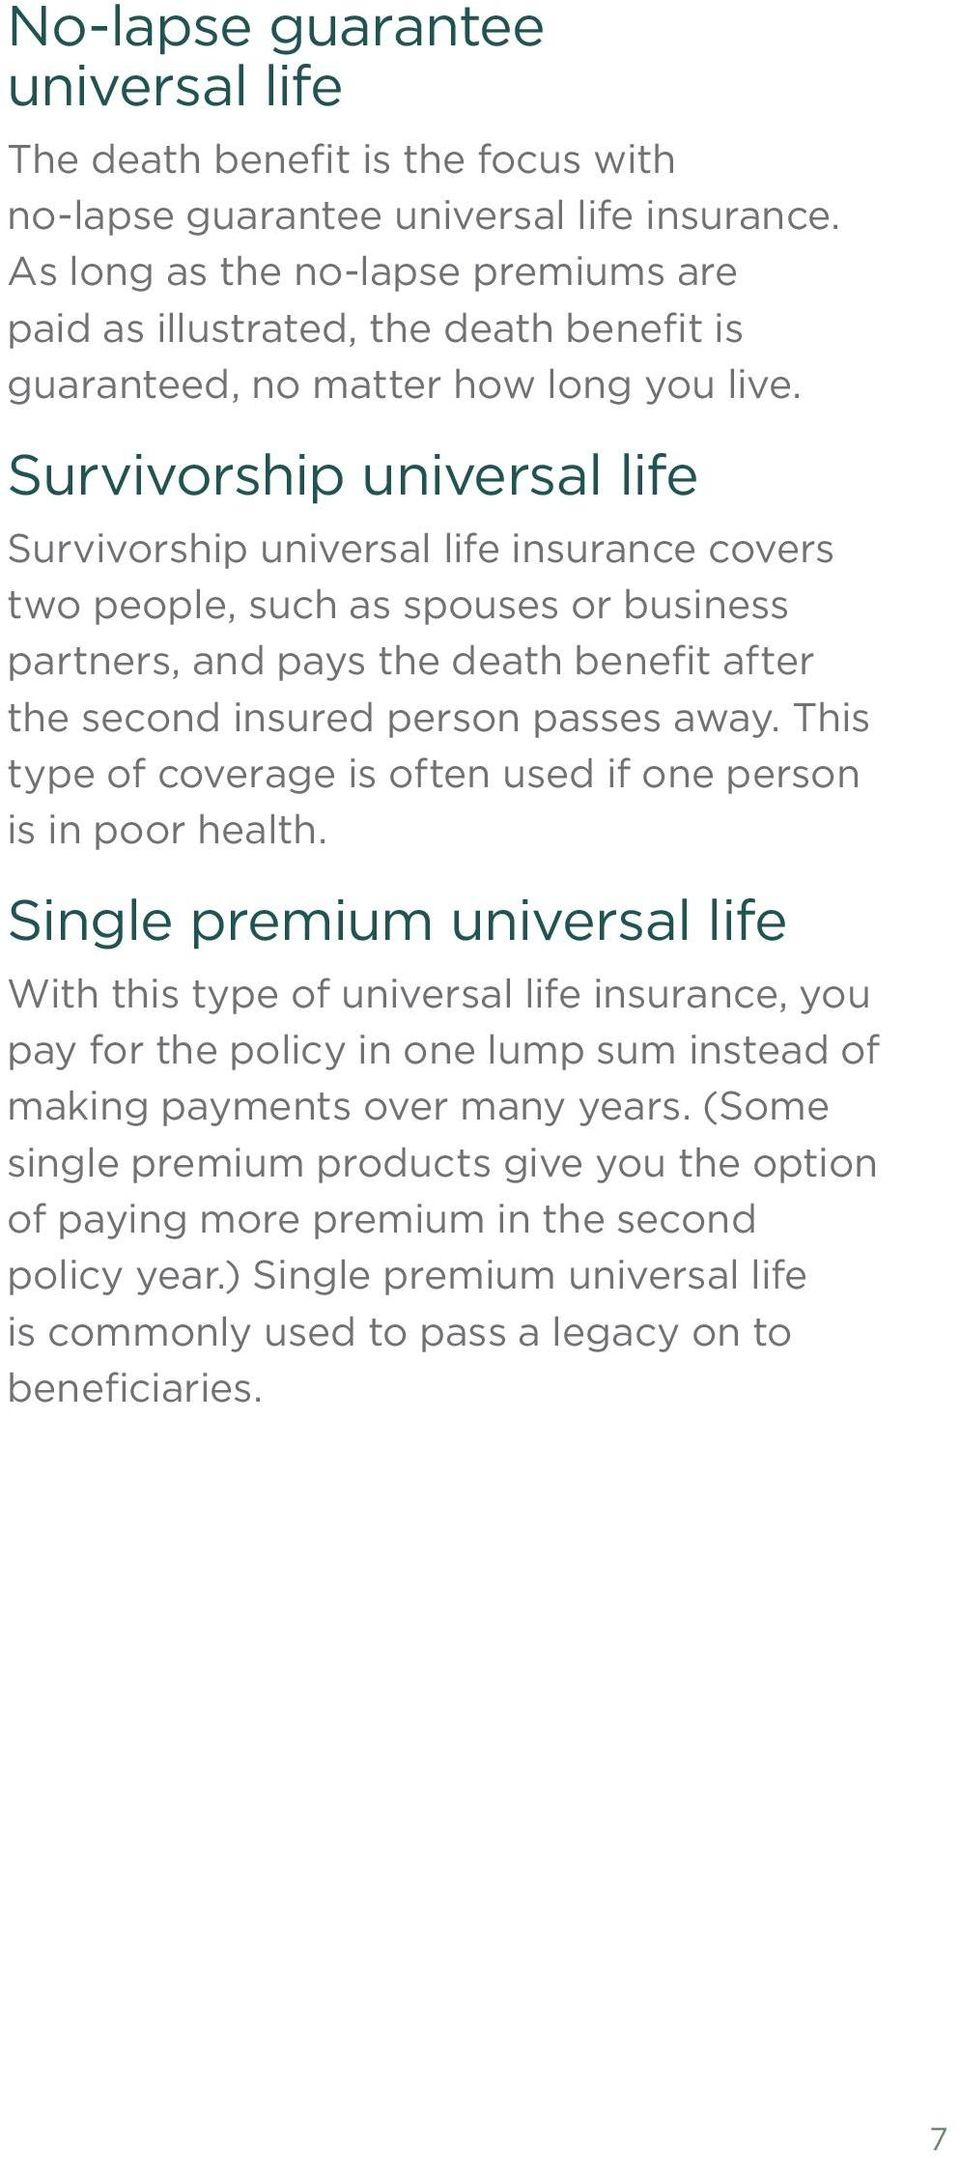 Survivorship universal life Survivorship universal life insurance covers two people, such as spouses or business partners, and pays the death benefit after the second insured person passes away.